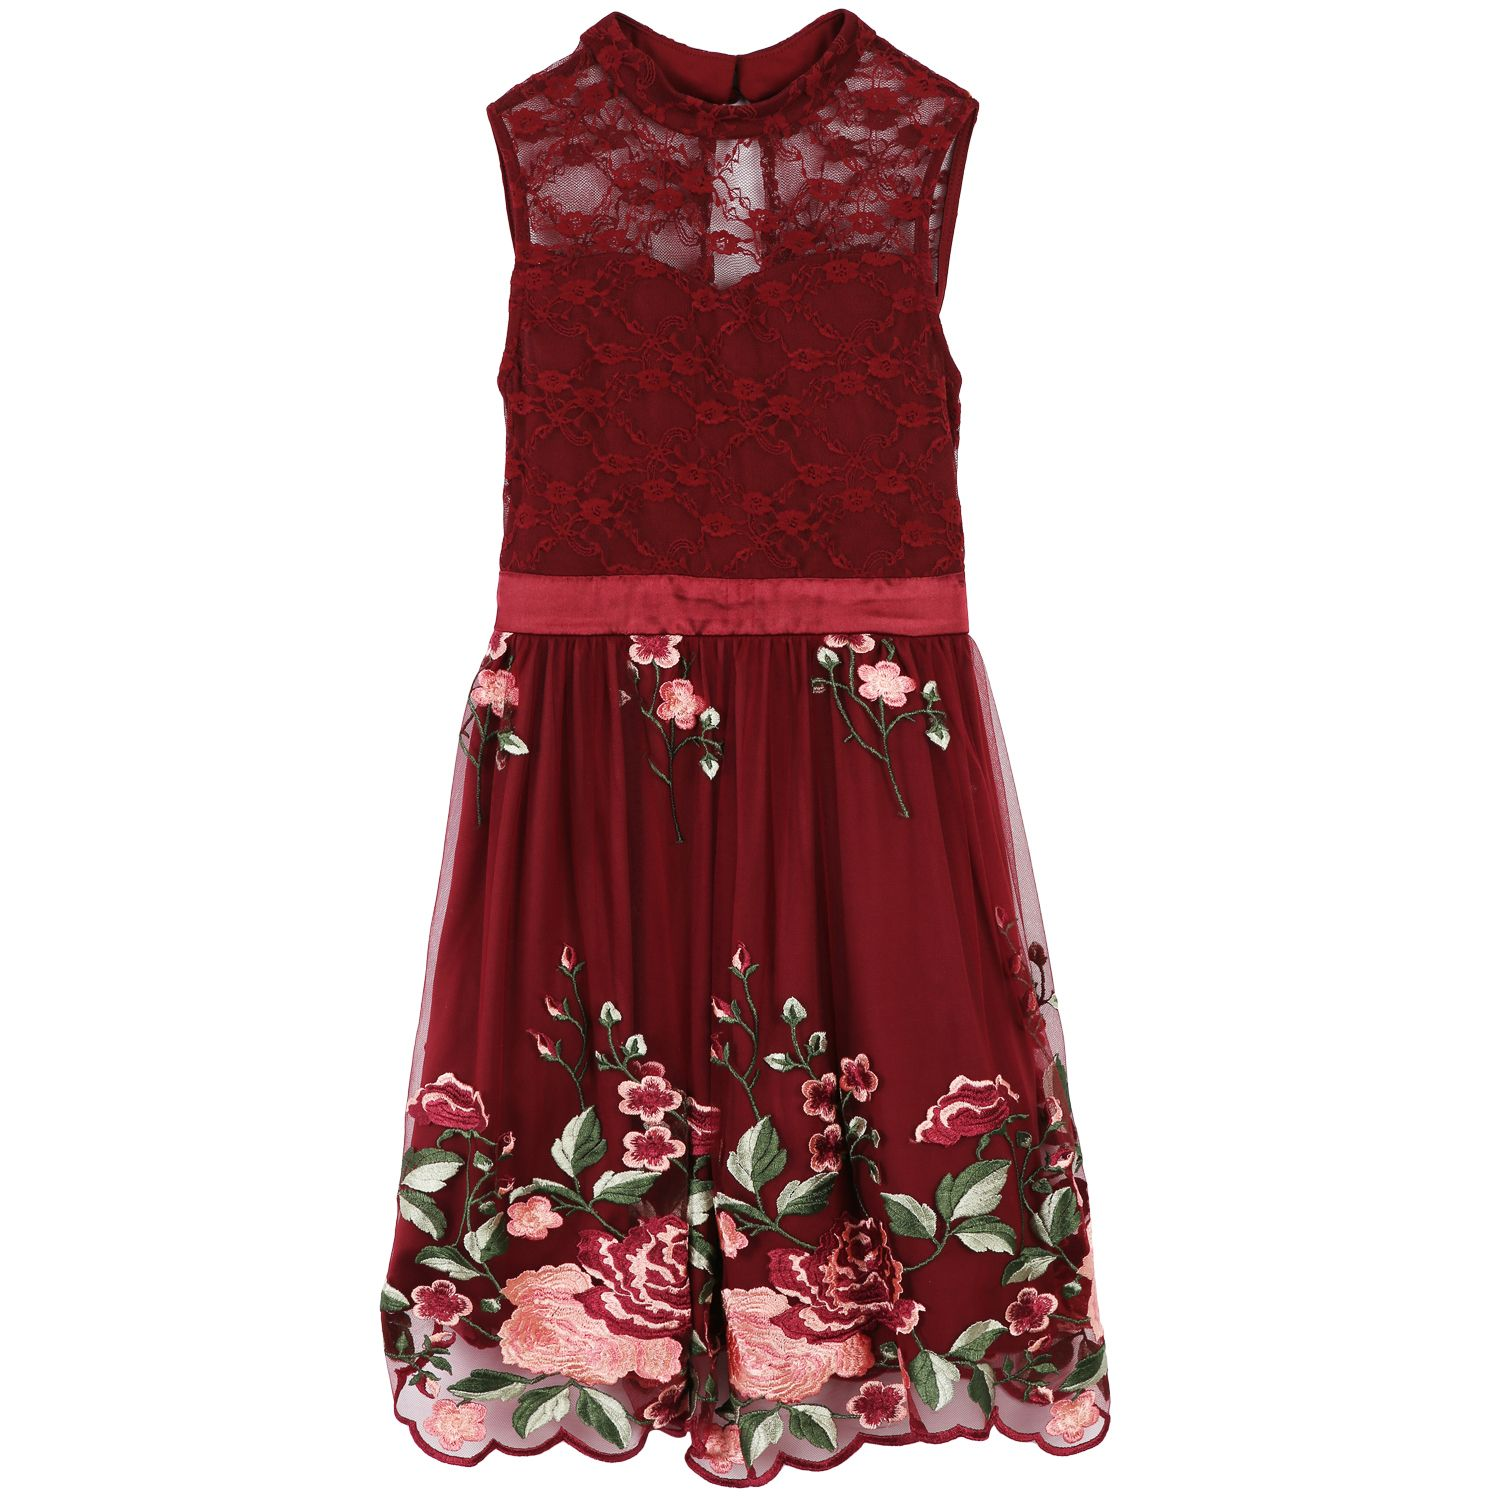 Red dress 3t heater